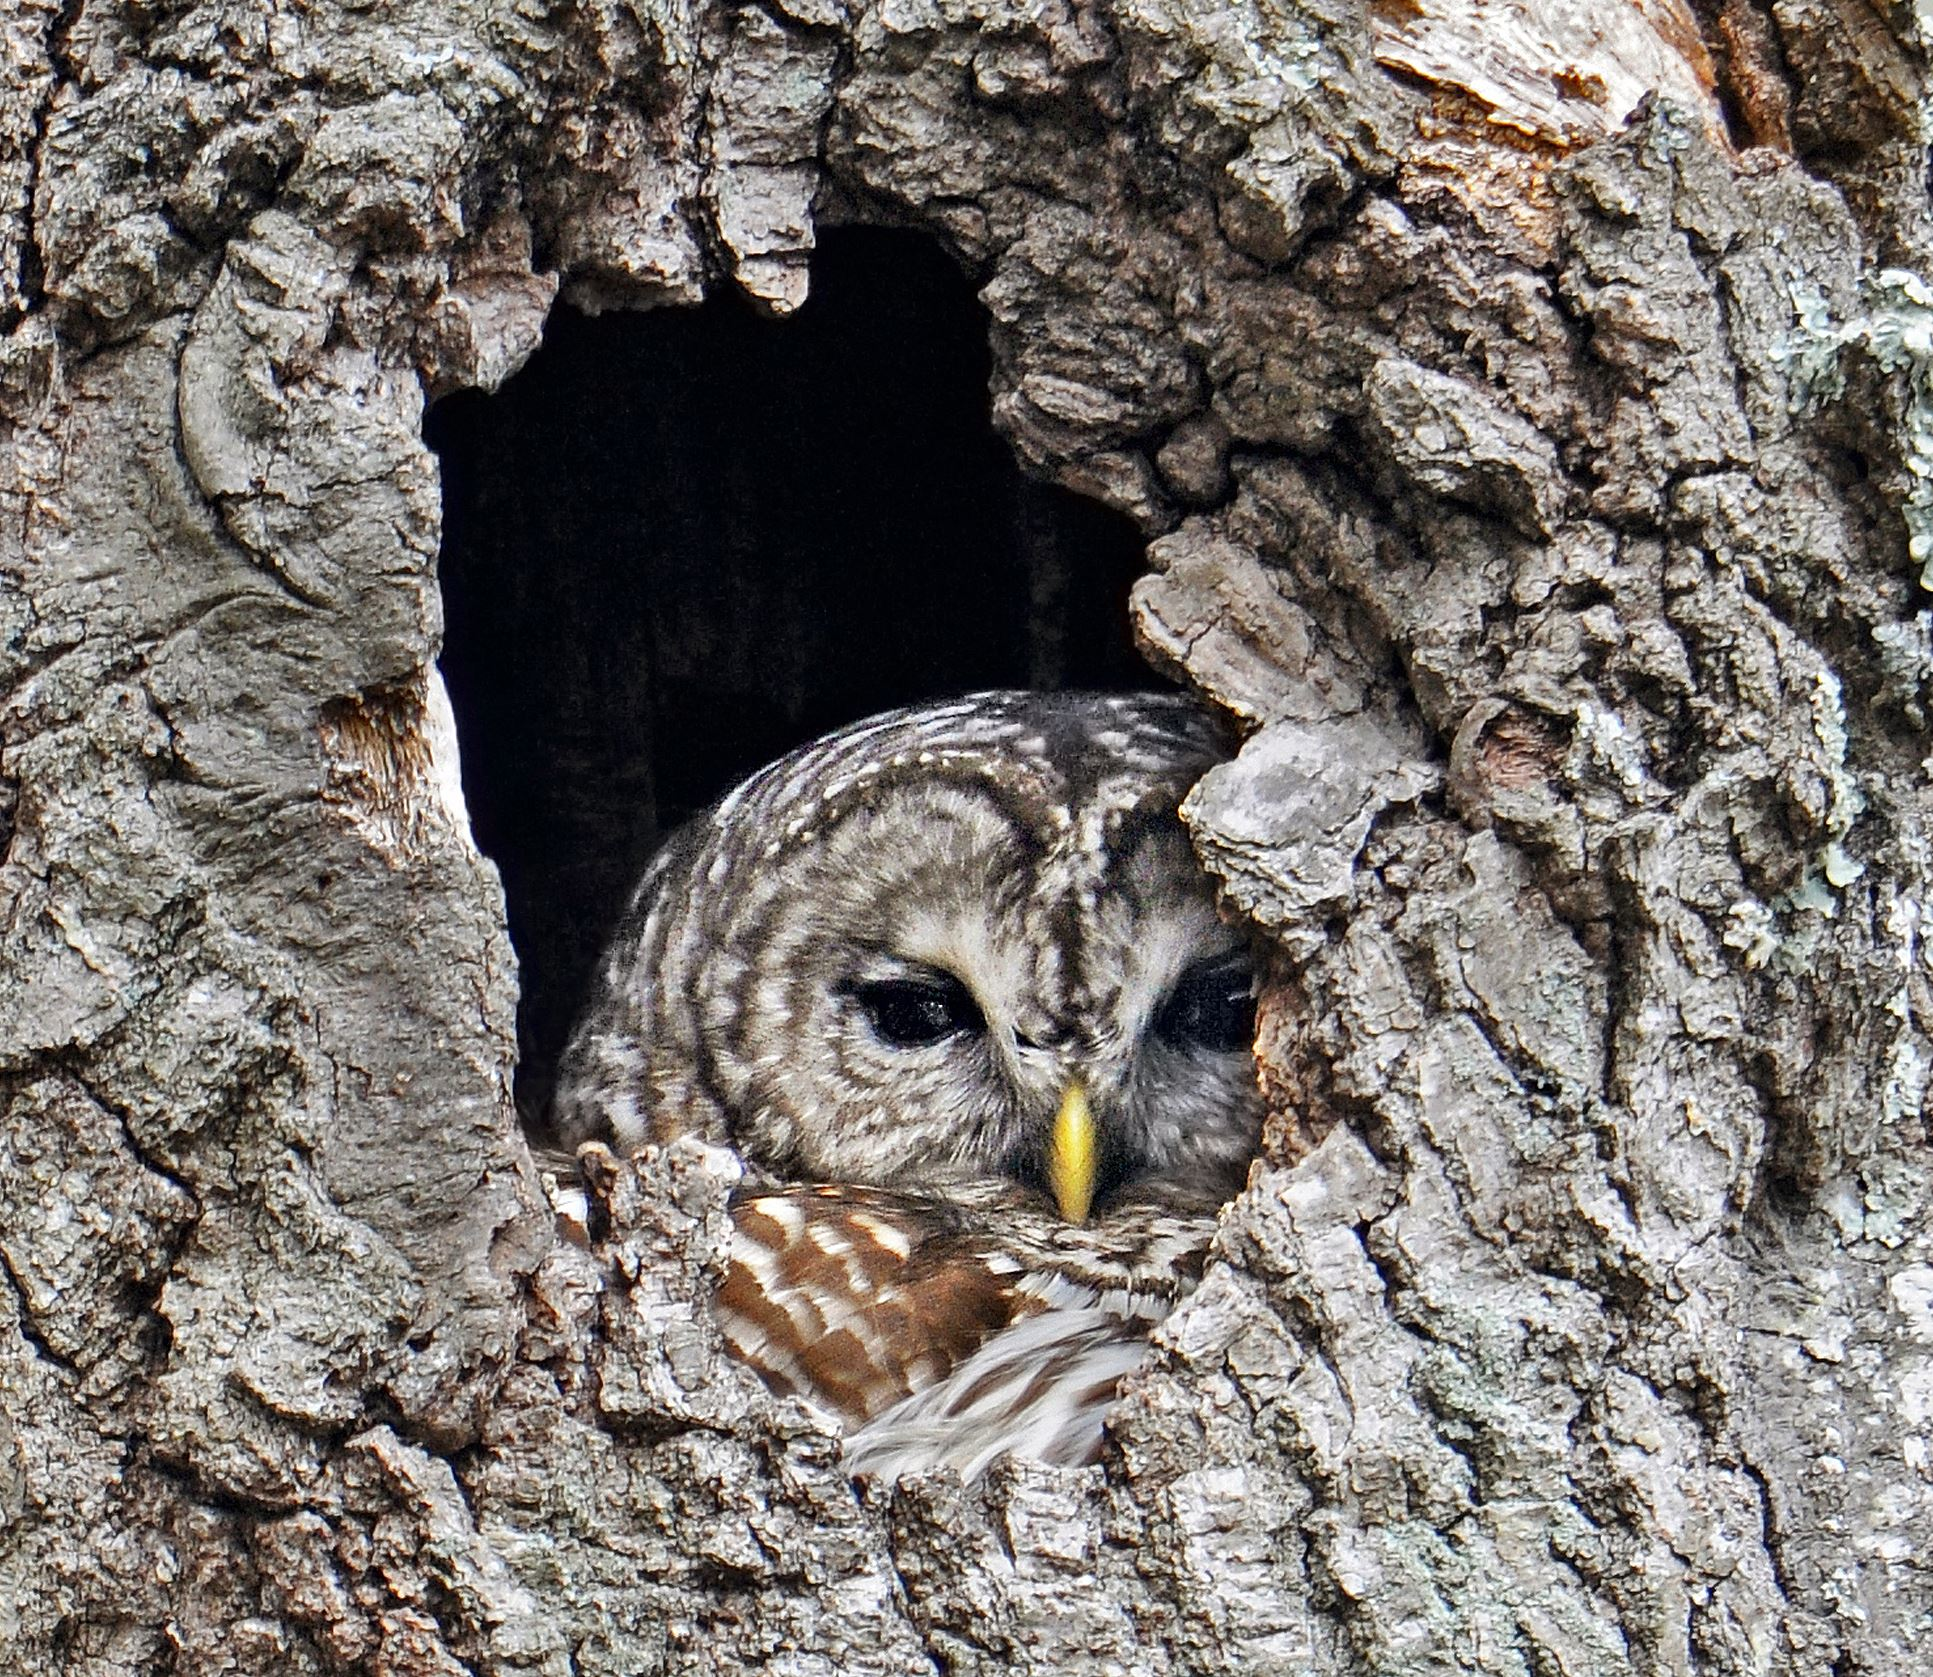 Barred Owl peeking from cavity, Photo © Mark Wilson / Eyes On Owls